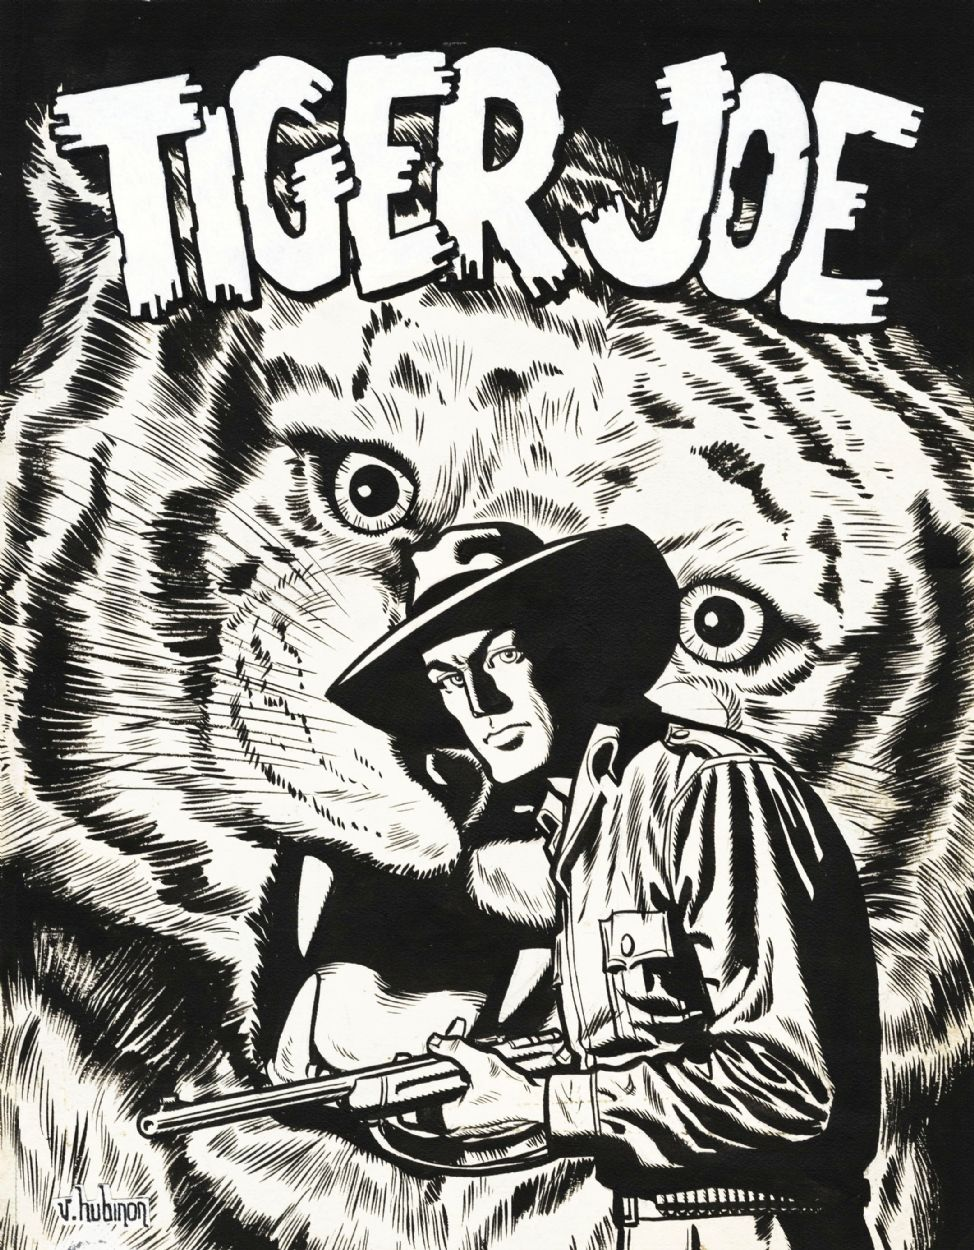 1951 - Tiger Joe.  Original Comic Art.  VICTOR HUBINON - 1924/1979 - Belgium  JEAN MICHEL CHARLIER - 1924/1989 - Belgium  Tiger Joe  Cover book - Ink on paper -35x27 cm  Publication Belgian book 1951.